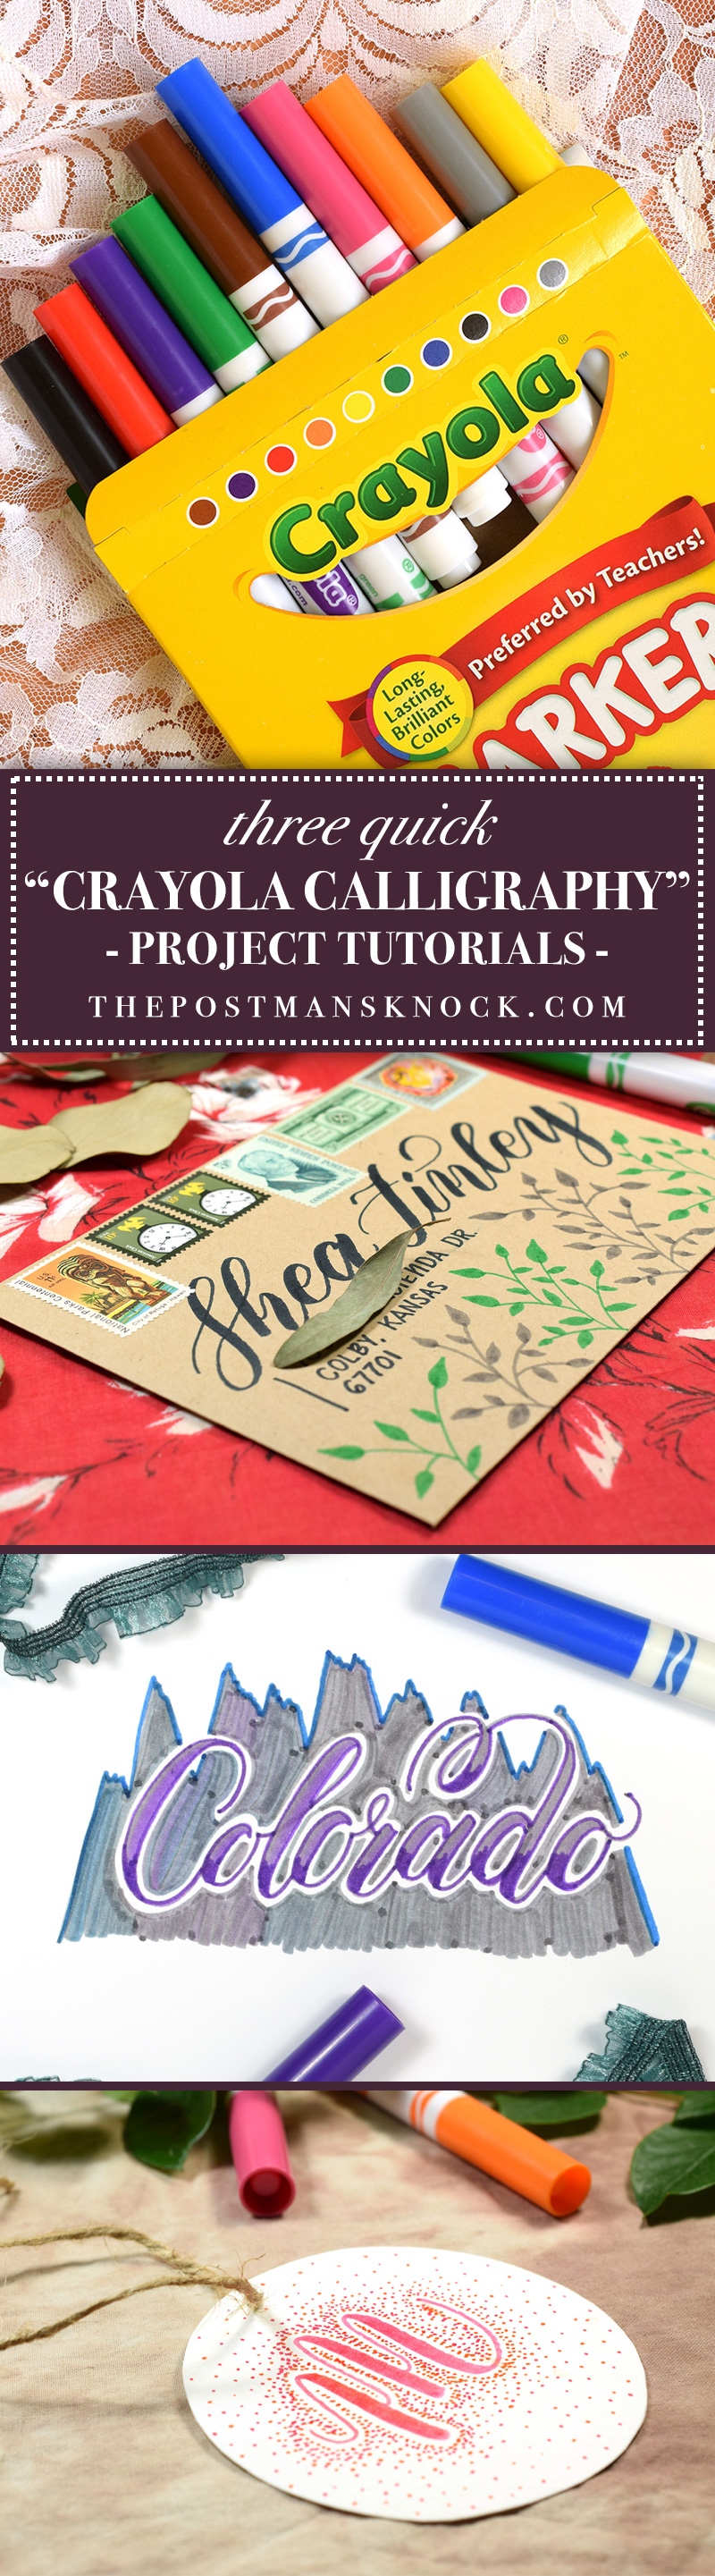 "3 Quick ""Crayola Calligraphy"" Projects 